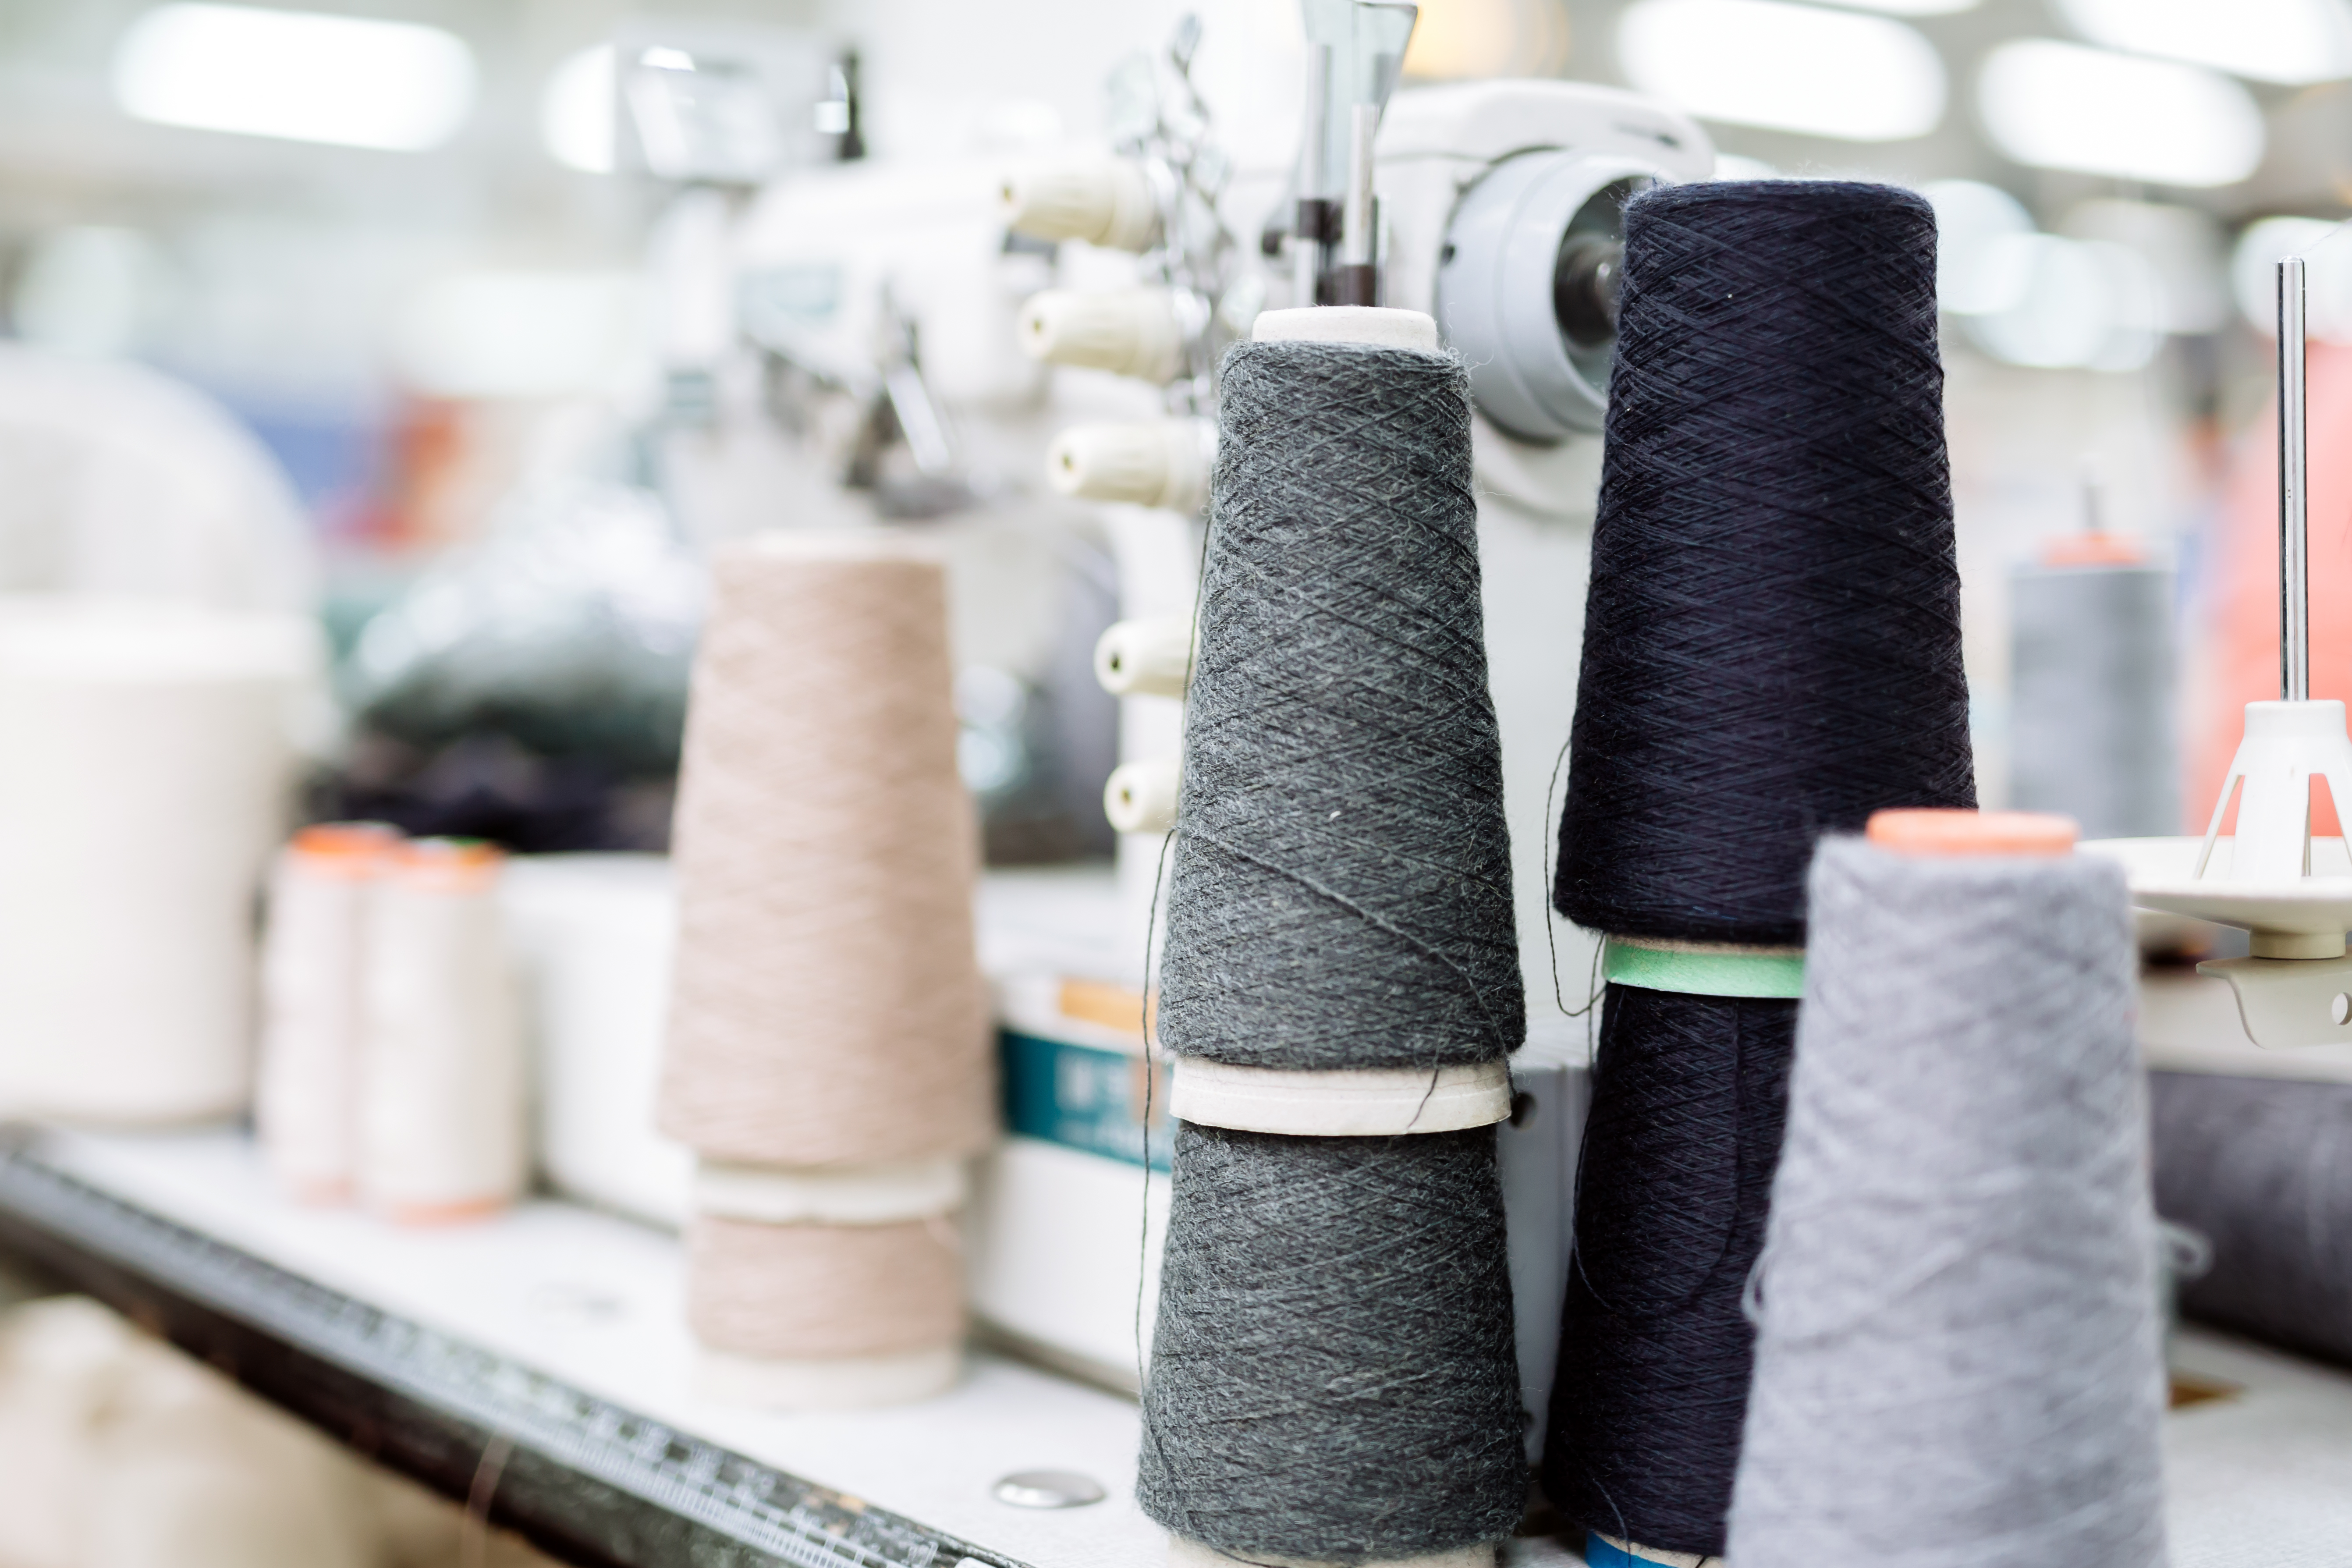 wool-and-thread-spools-on-desk-2A3L76T